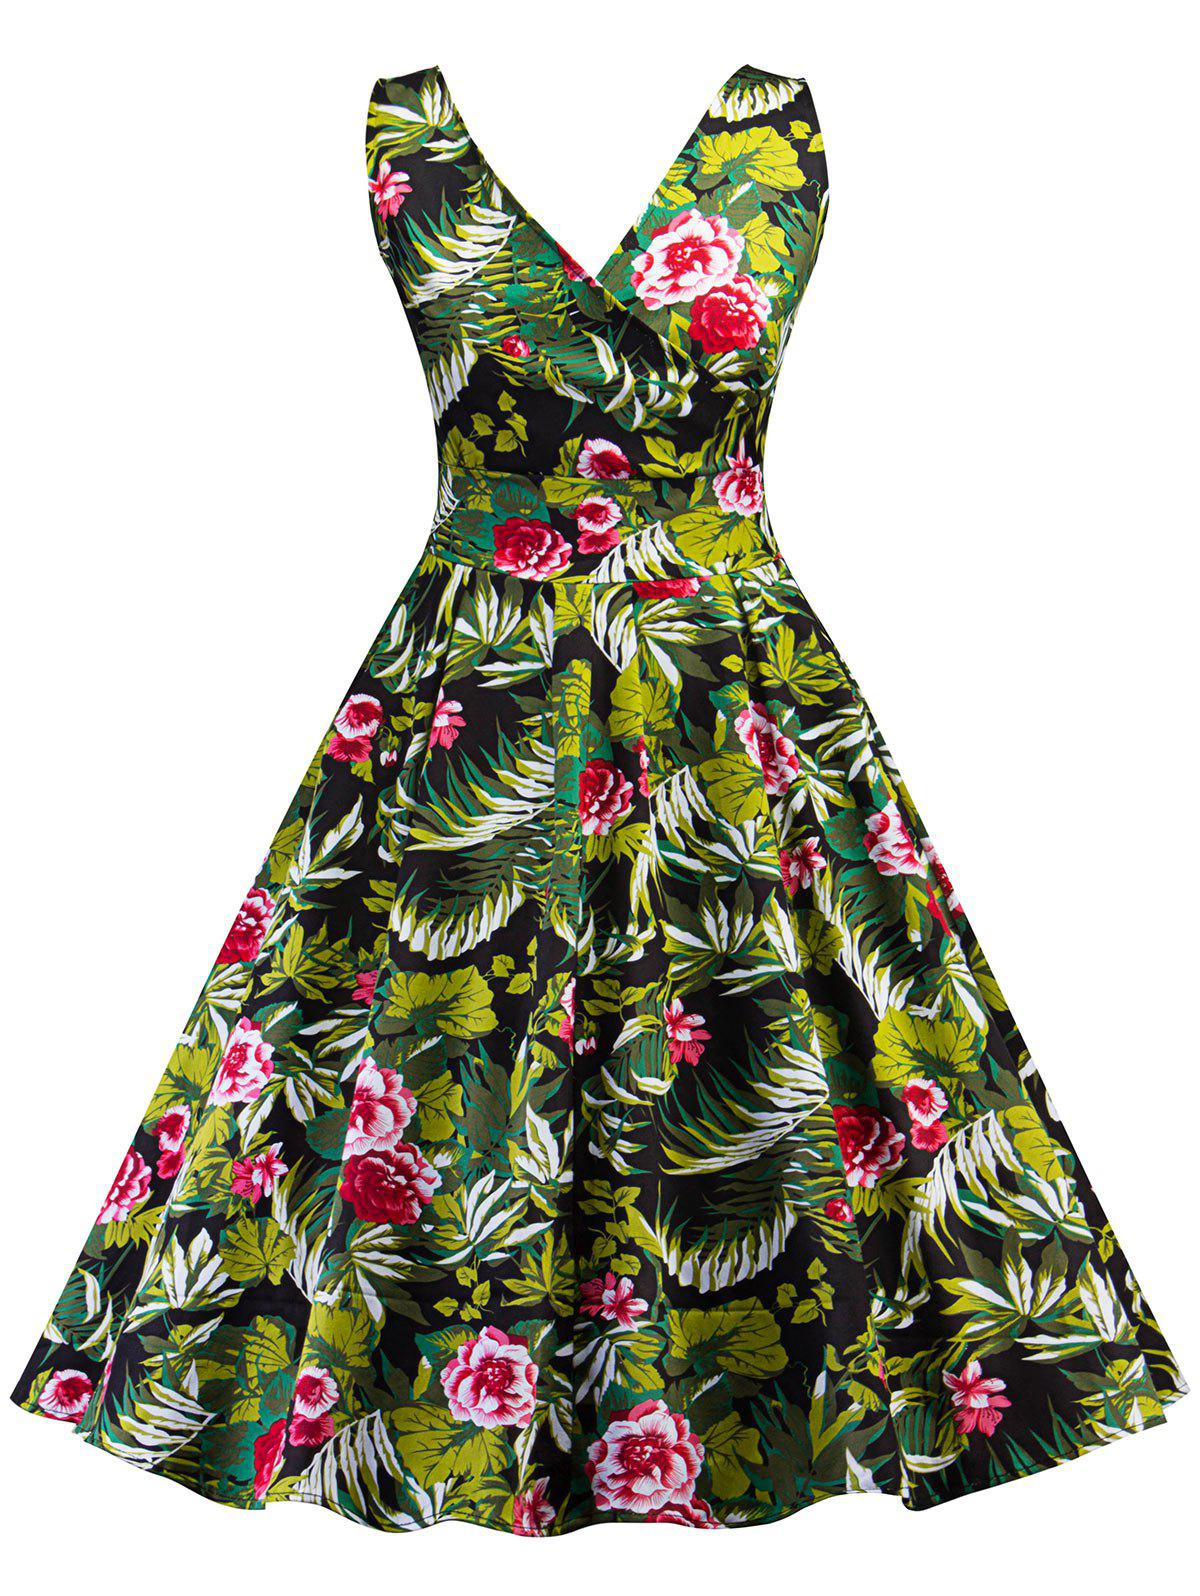 Retro Tropical Print Skater Pin Up Dress - GREEN XL